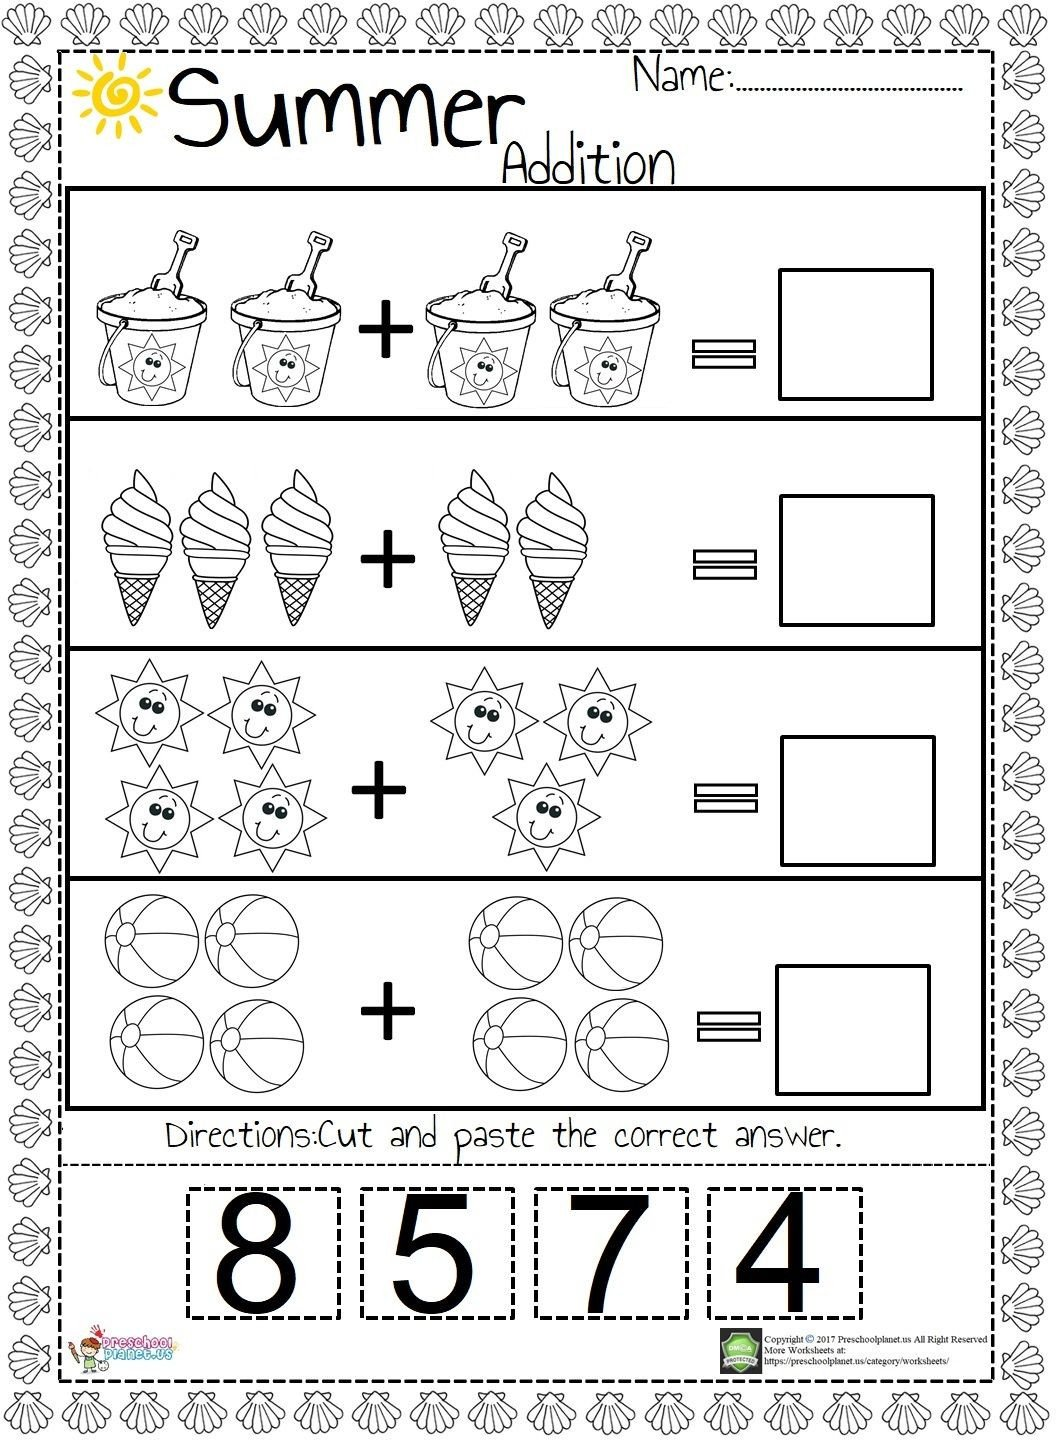 Simple Addition Worksheets for Kindergarten We Prepared An Easy and Funny Summer themed Addition